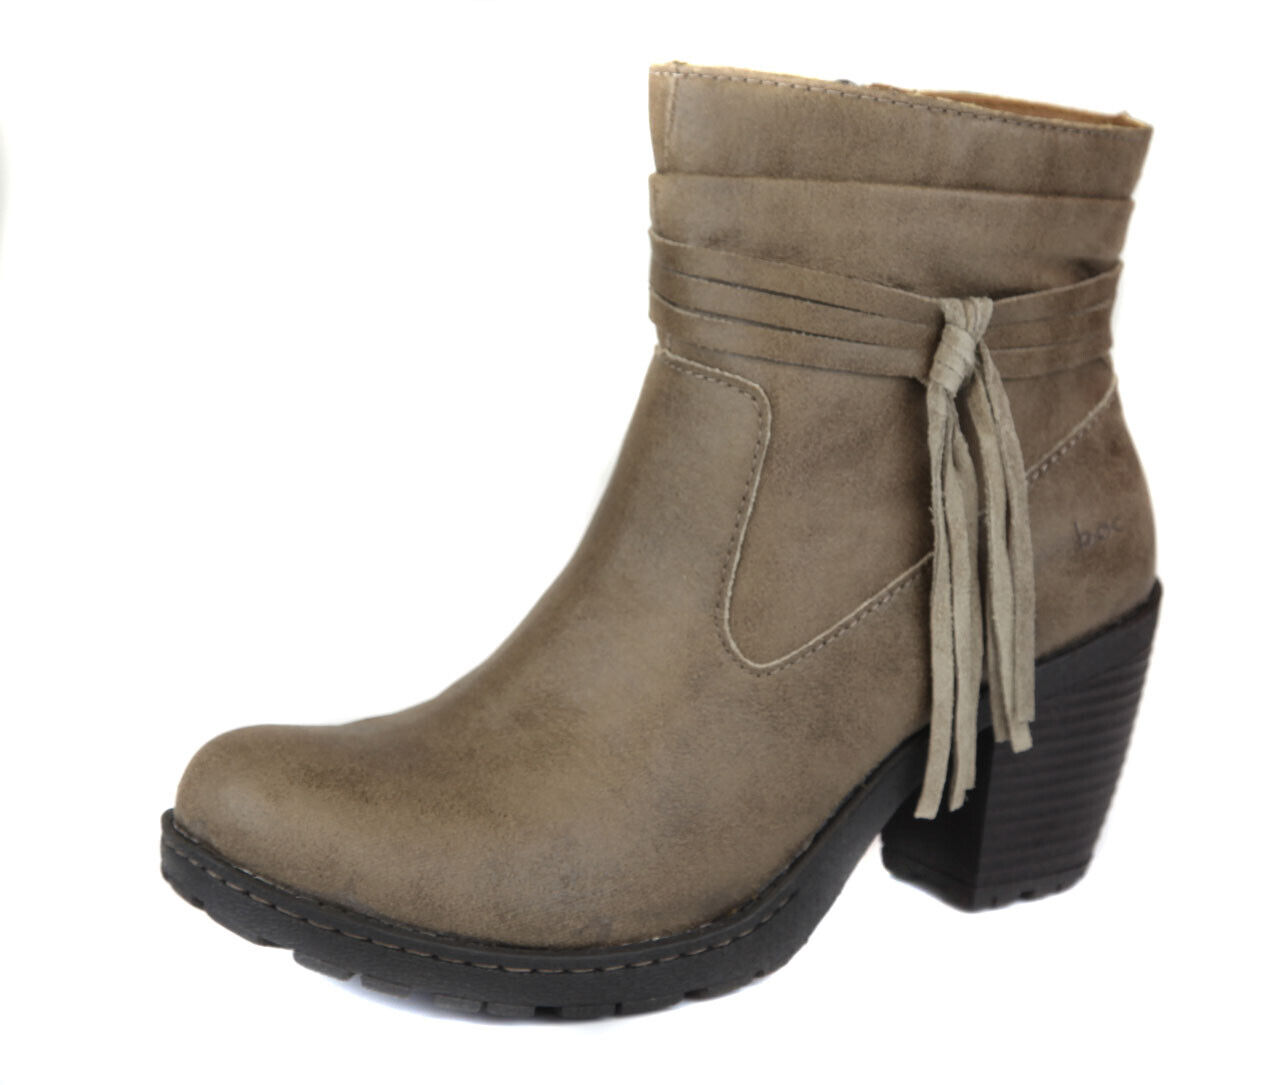 Born Women's Taupe Alicudi Tassle Ankle Bootie Boot shoes Ret  New